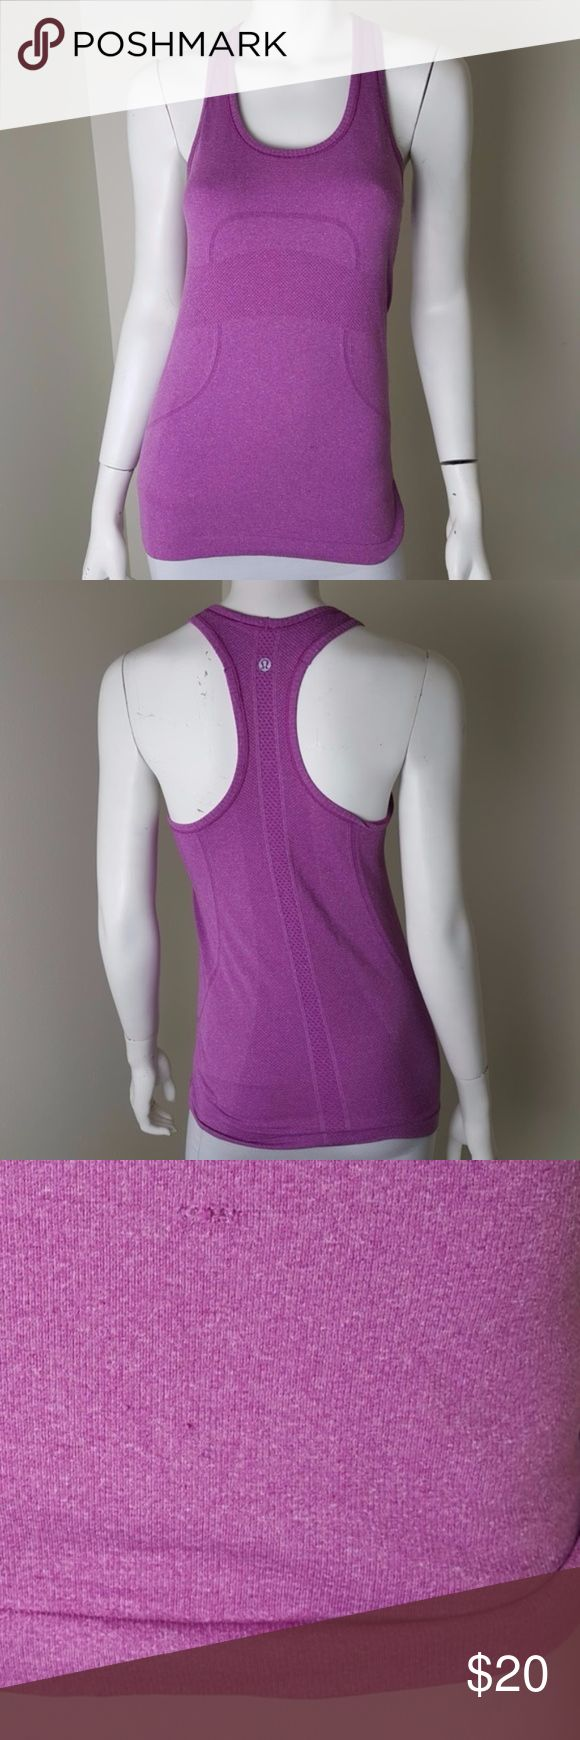 Lululemon Purple Tech Tank Top 6 Pretty purple color. It does have a run with several small snags (holes when stretched) along the run. Please see pictures before purchasing. Women's size 6.  #2023 lululemon athletica Tops Tank Tops